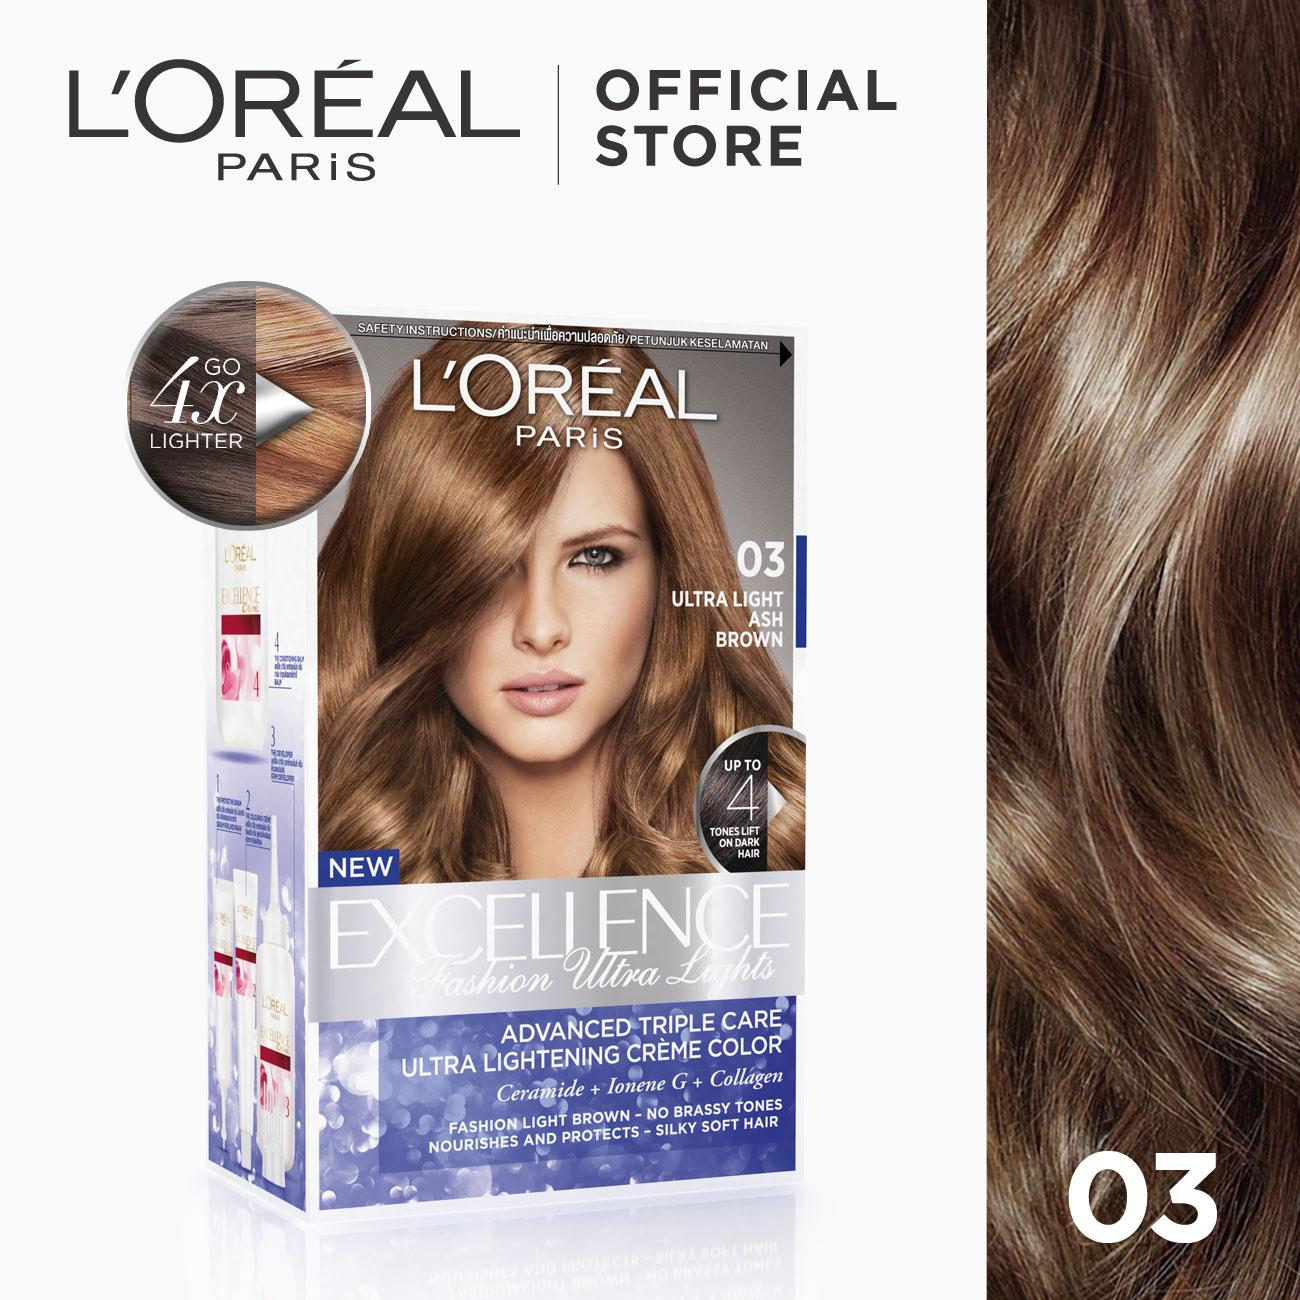 Excellence Fashion Ultra Lights Hair Color 03 Ash Brown World S